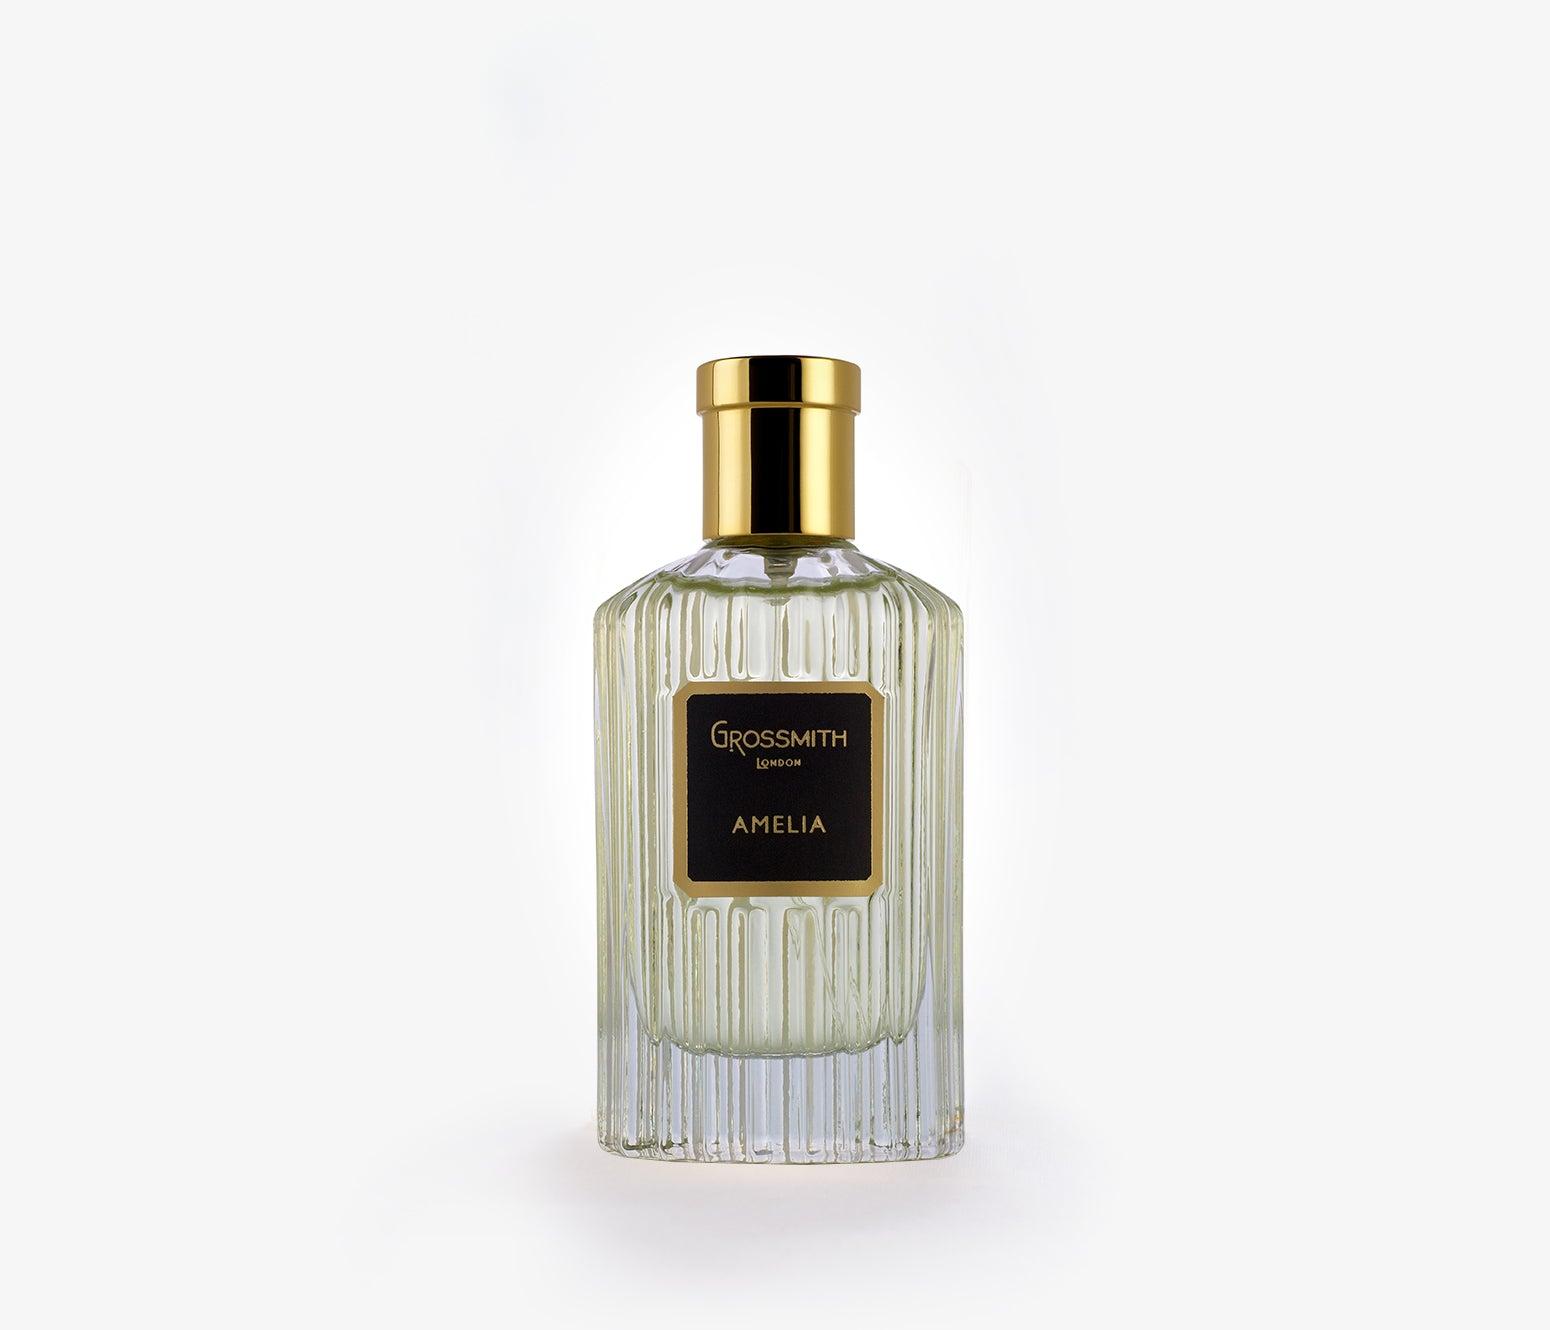 Grossmith London - Amelia - 50ml - ZXW1995 - product image - Fragrance - Les Senteurs